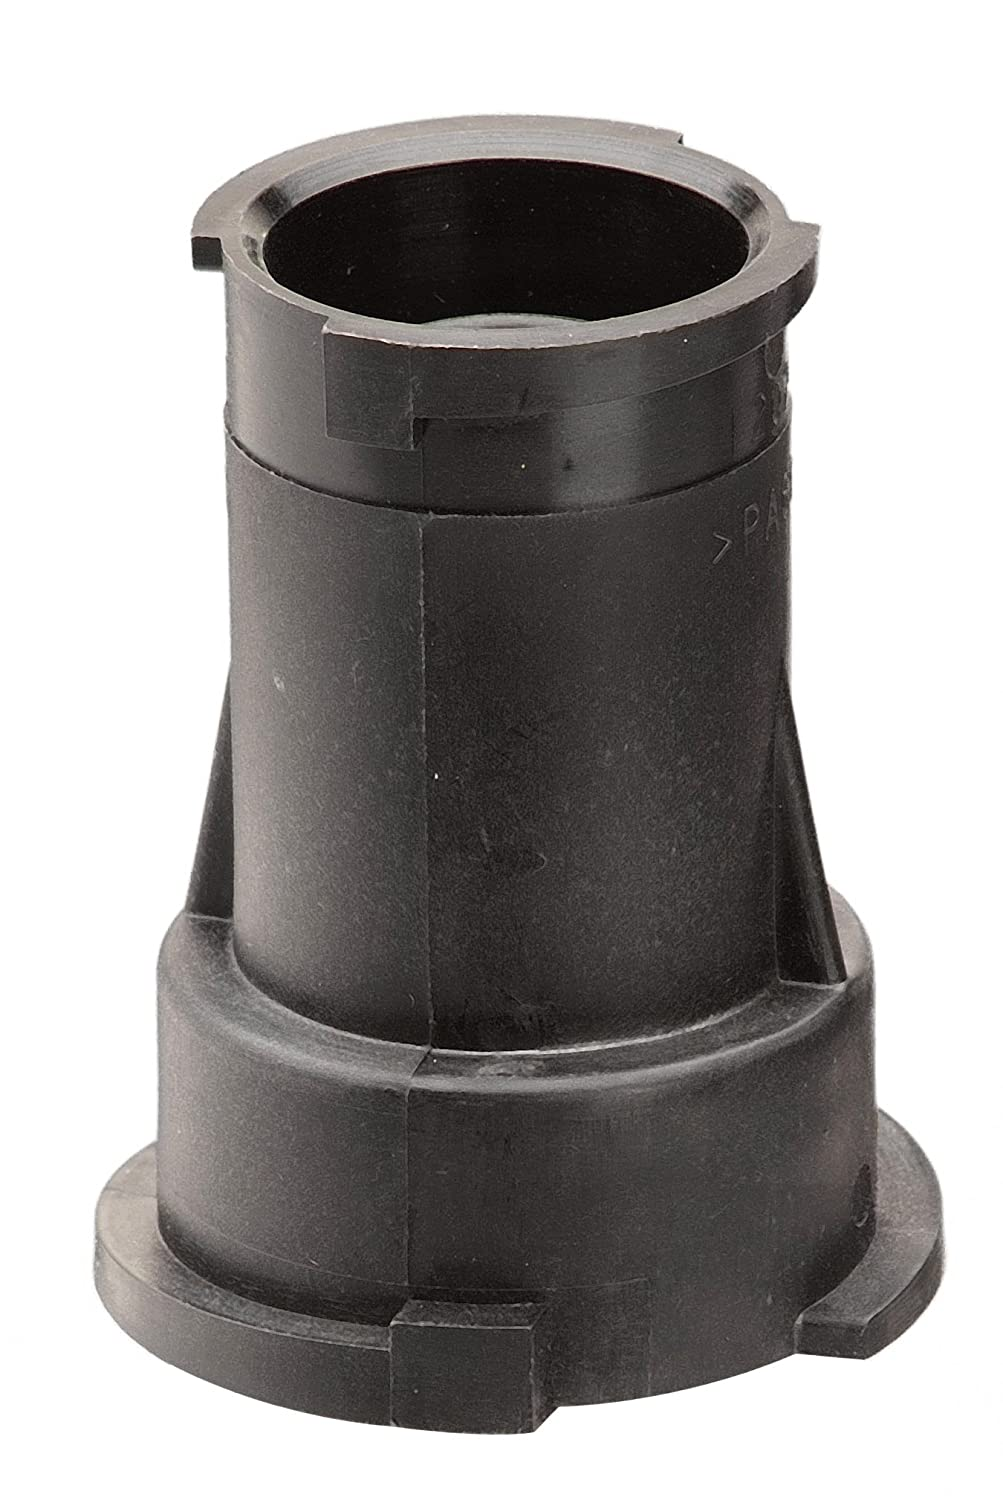 Stant 12024 Radiator Cap Adapter